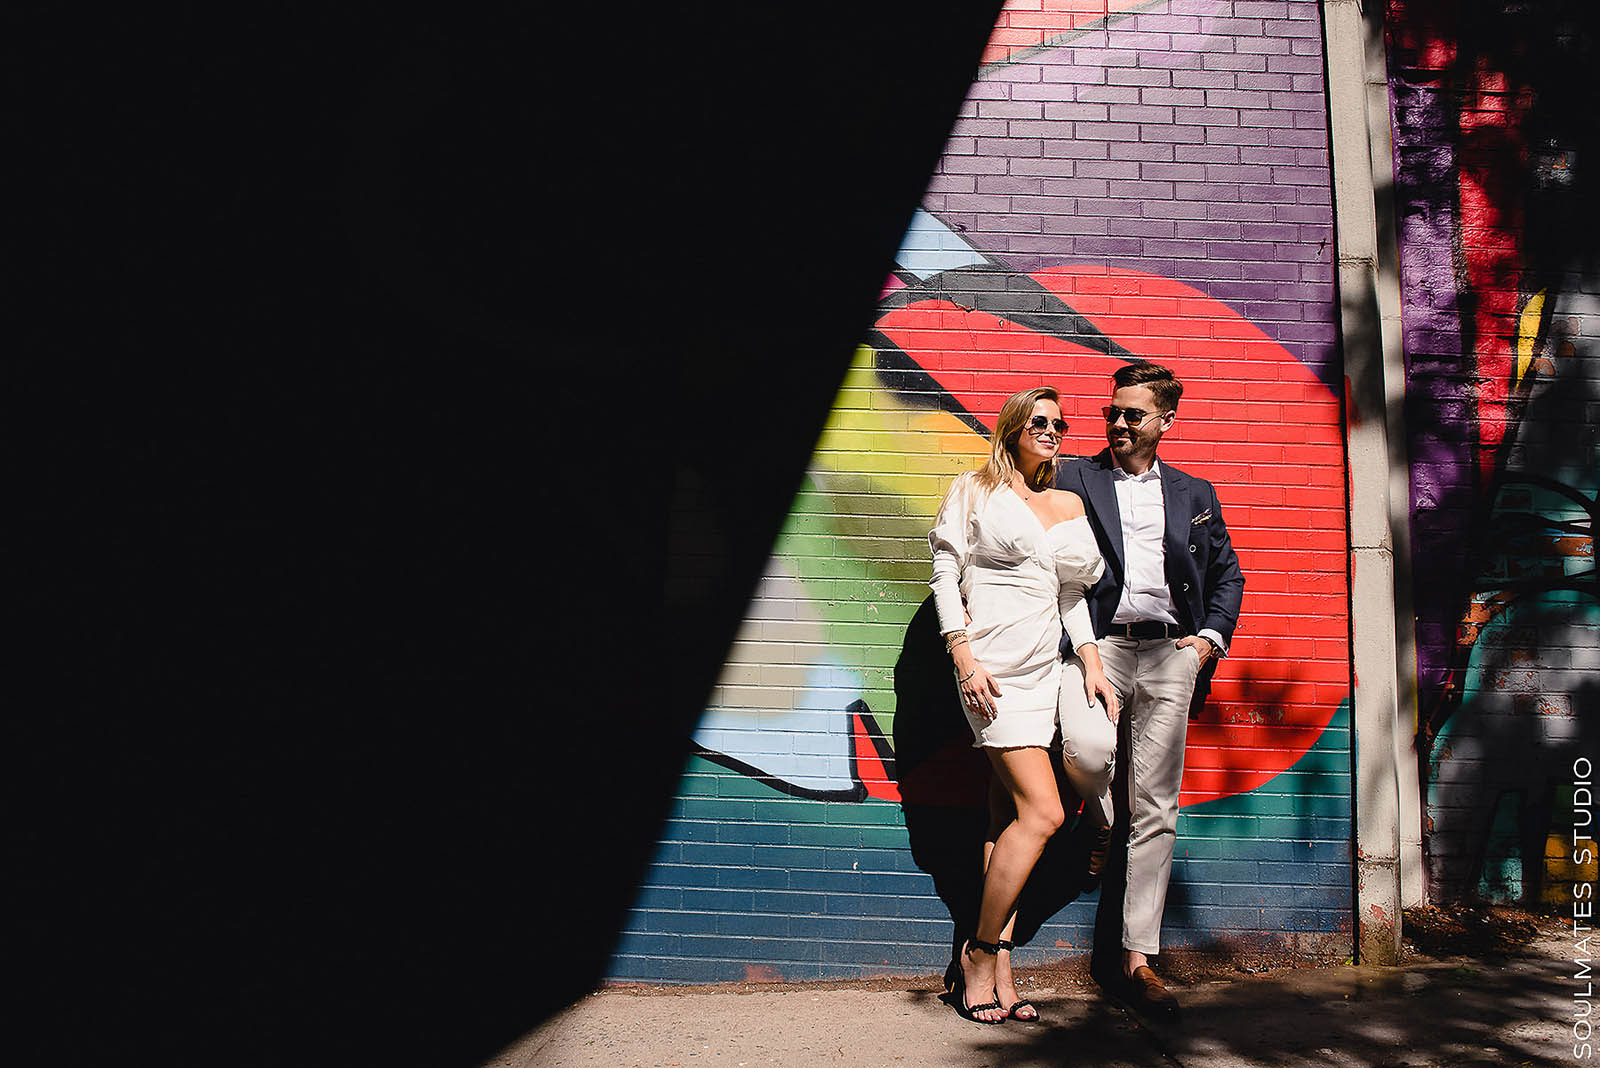 DUMBO Colorful art wall as a backdrop for the couple